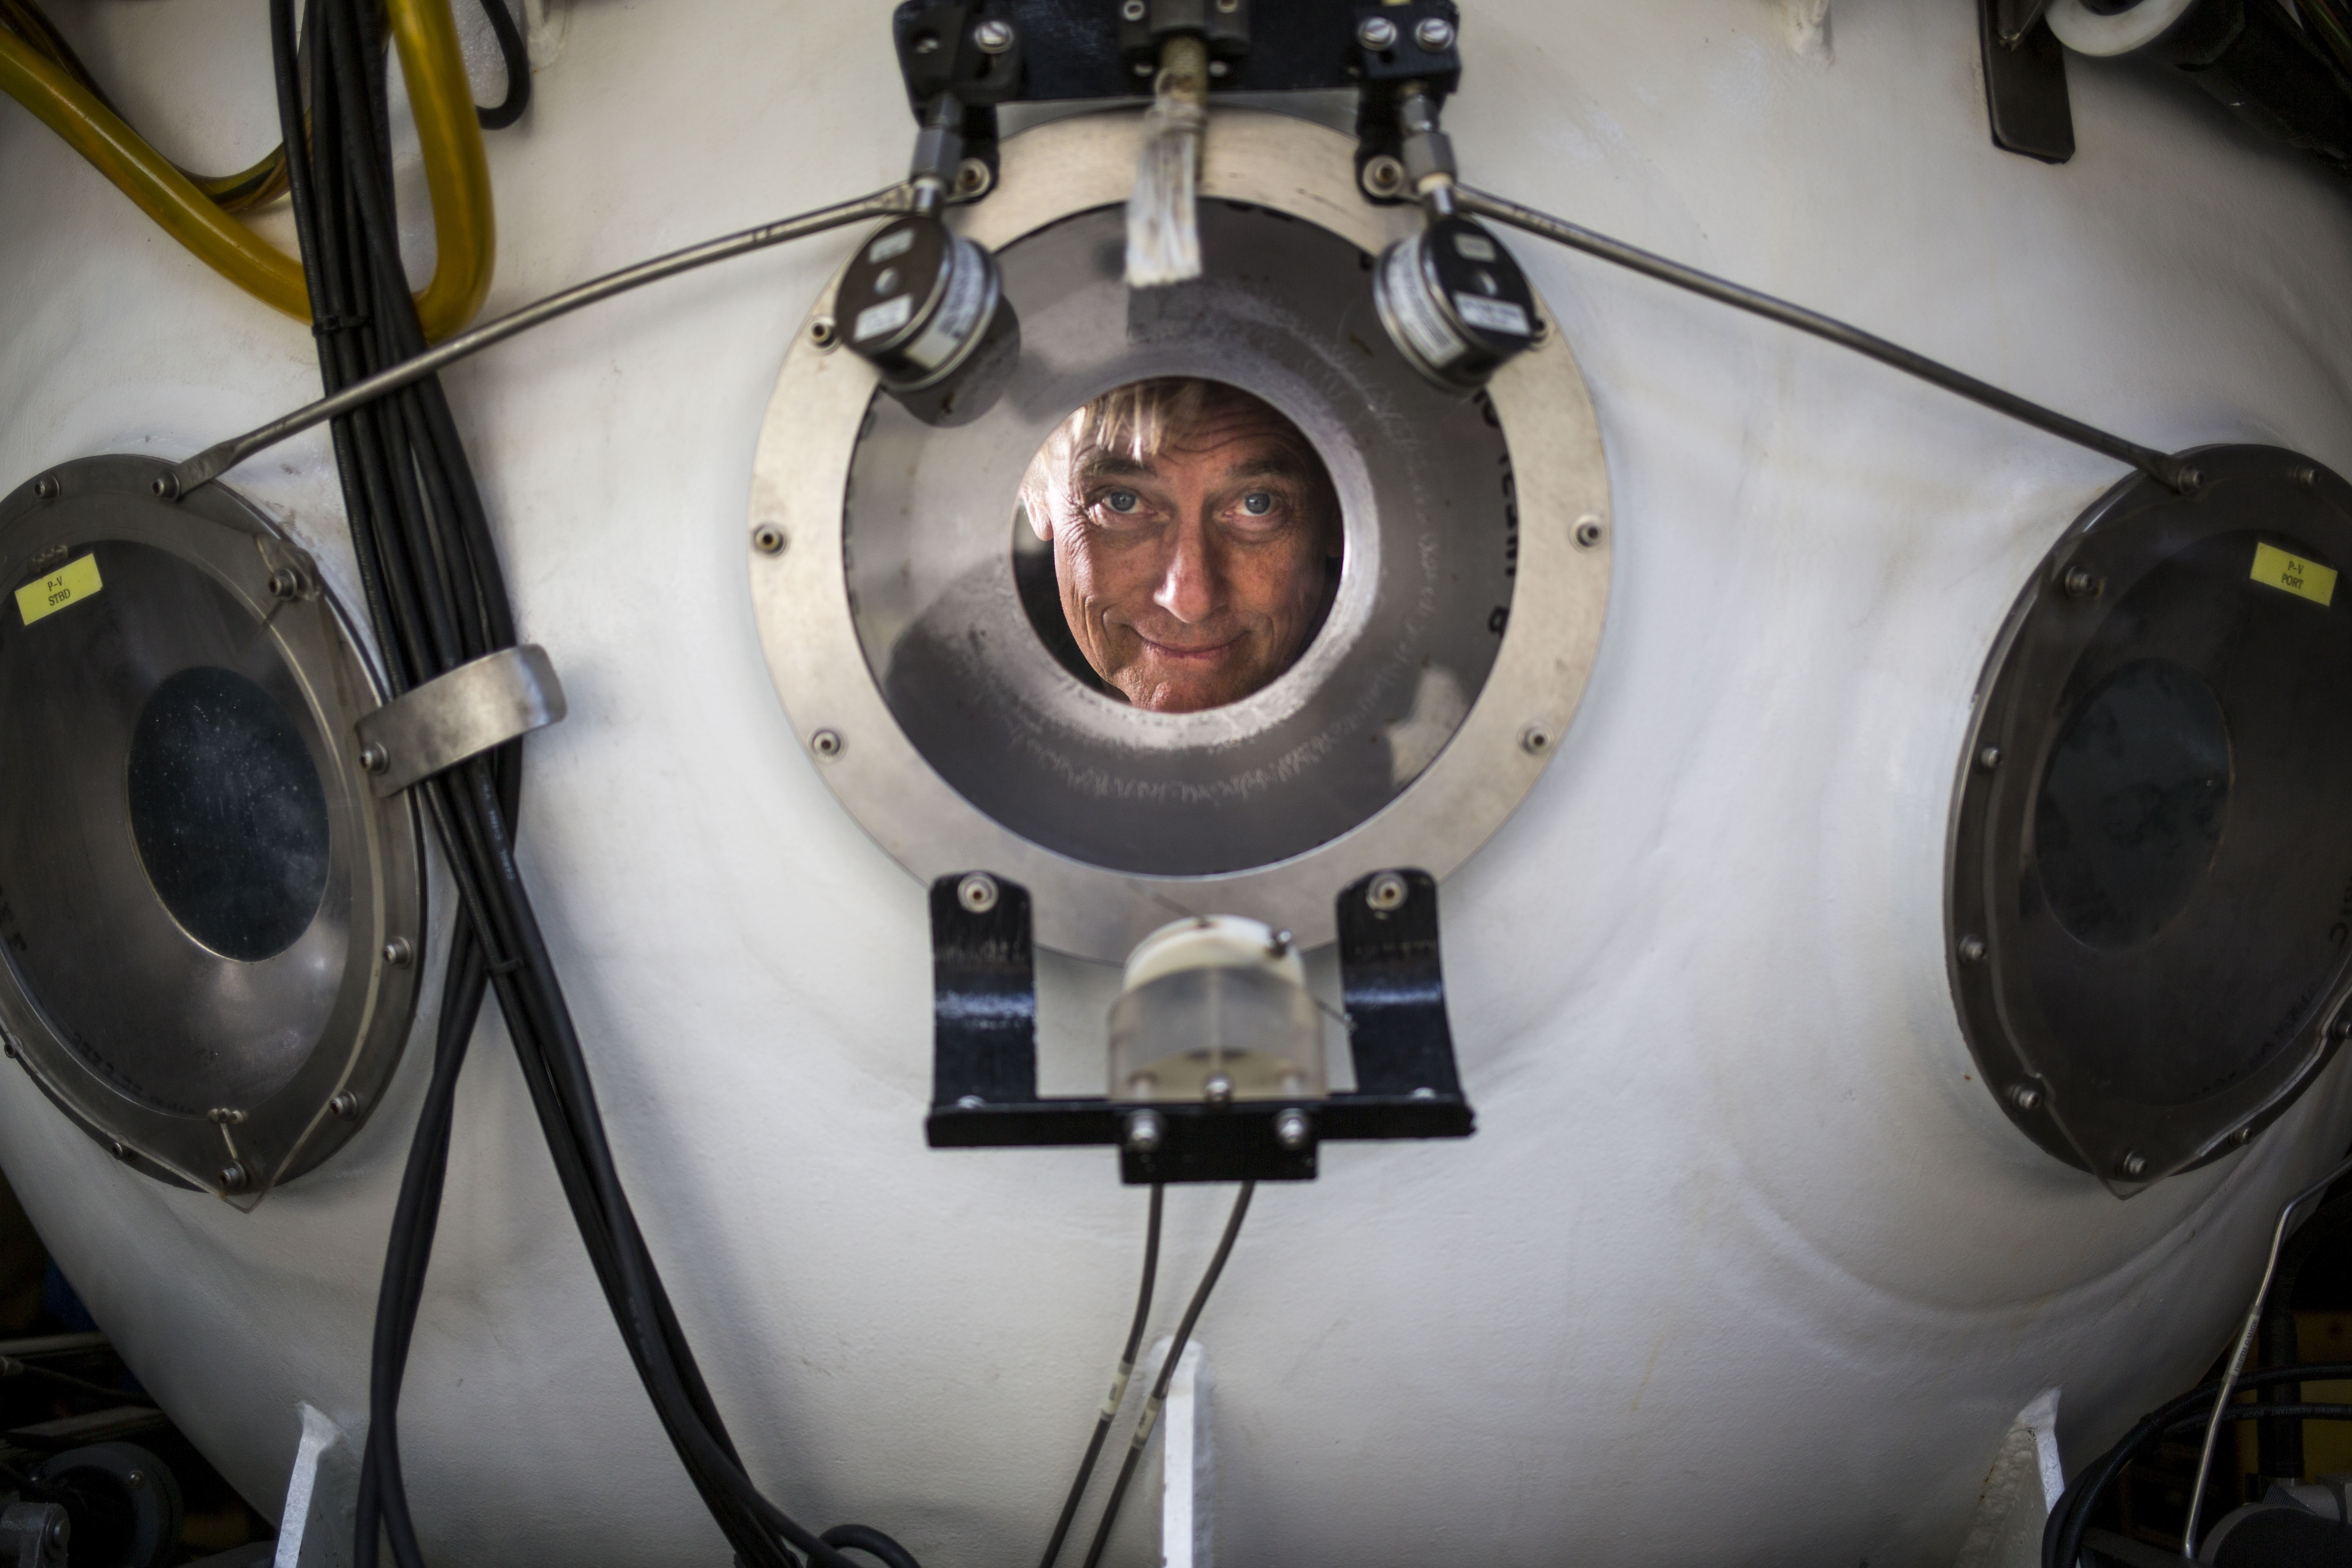 Terry Kerby, the Director of Facilities and Submersible Operations at the Hawaii Undersea Research Laboratory in the personnel sphere of the Pisces V.